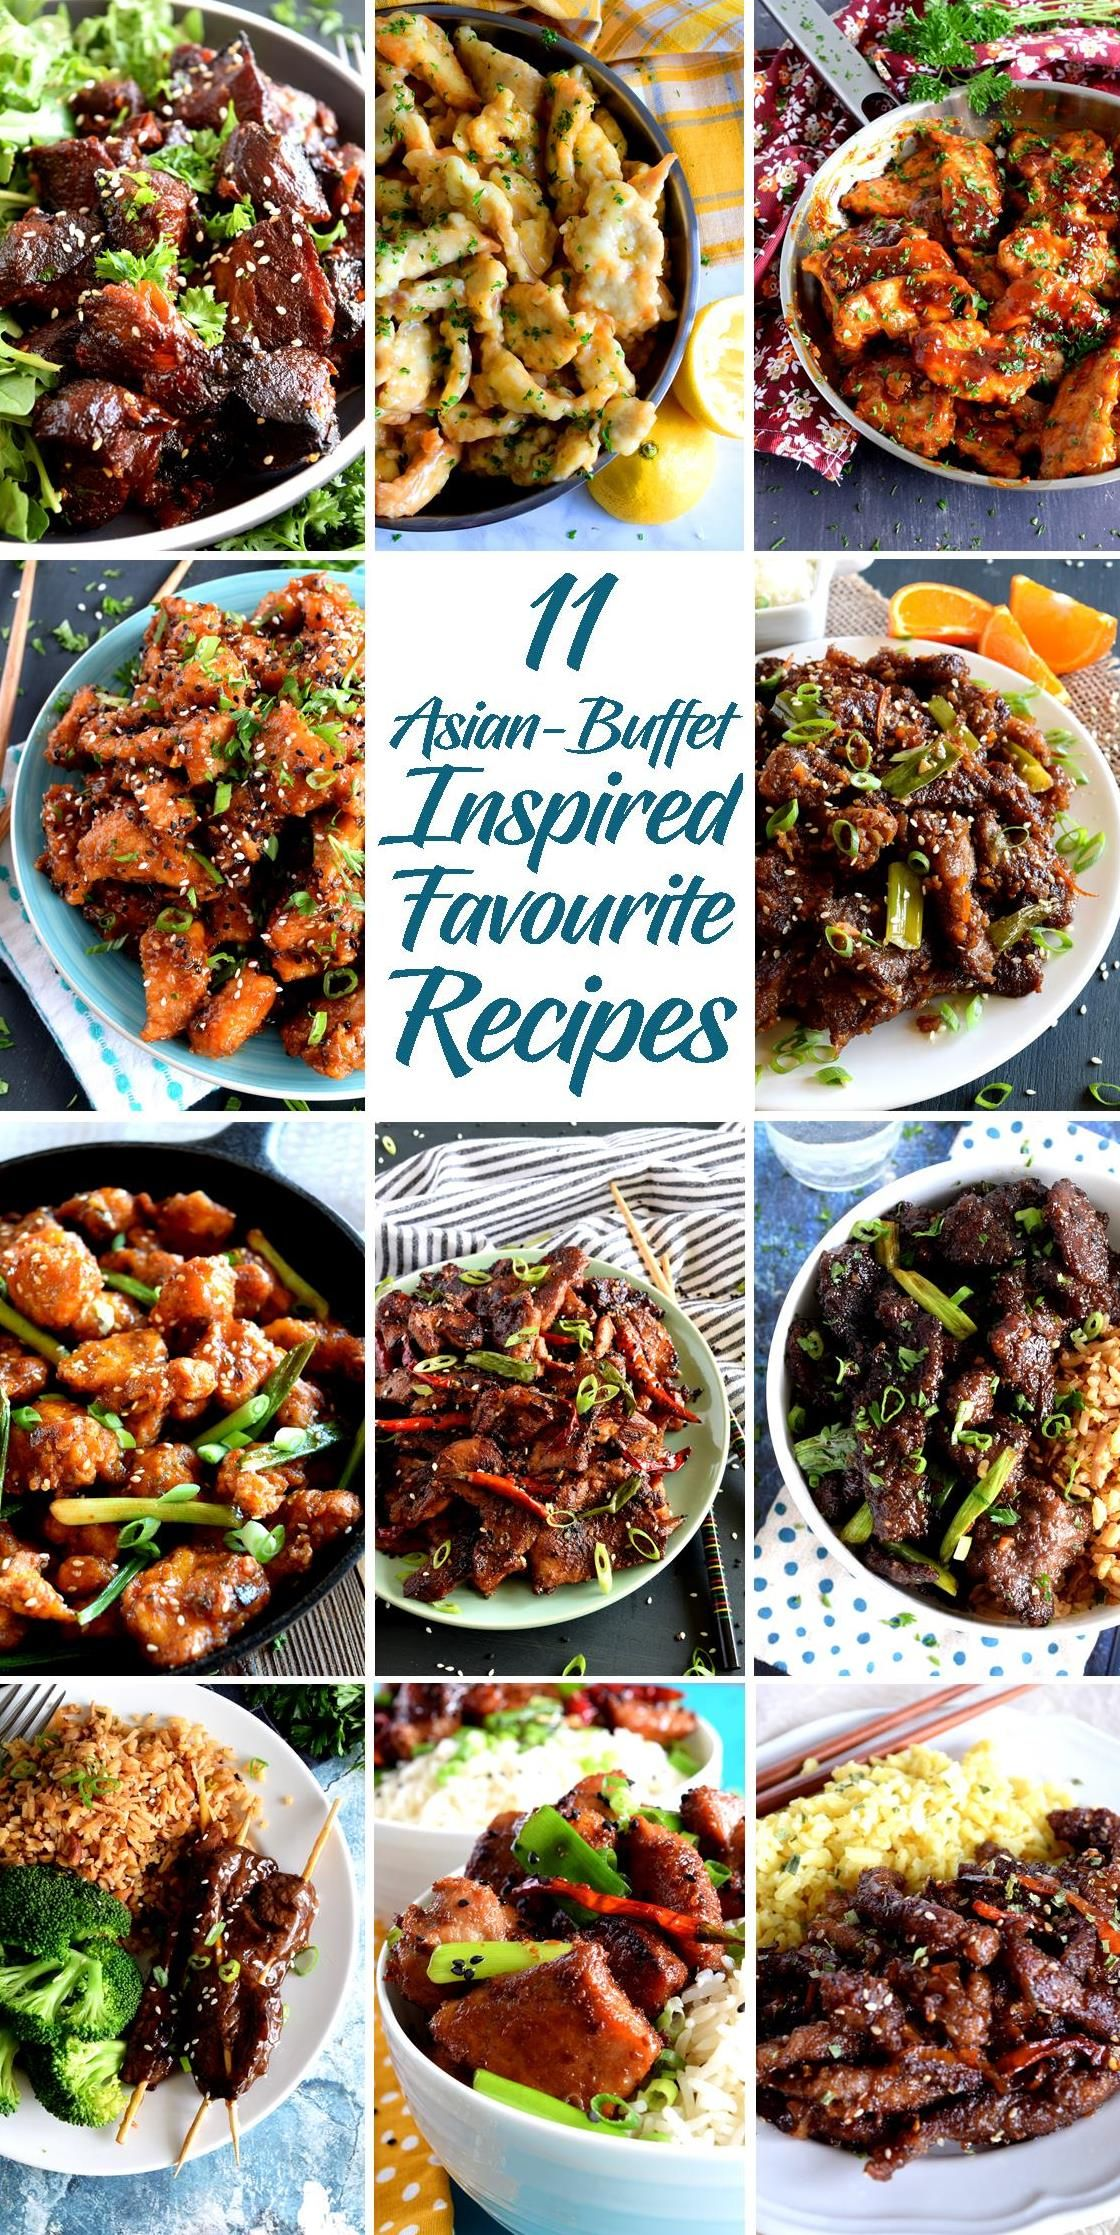 11 Asian Buffet Inspired Favourite Recipes Recipes Favorite Recipes Chicken And Beef Recipe